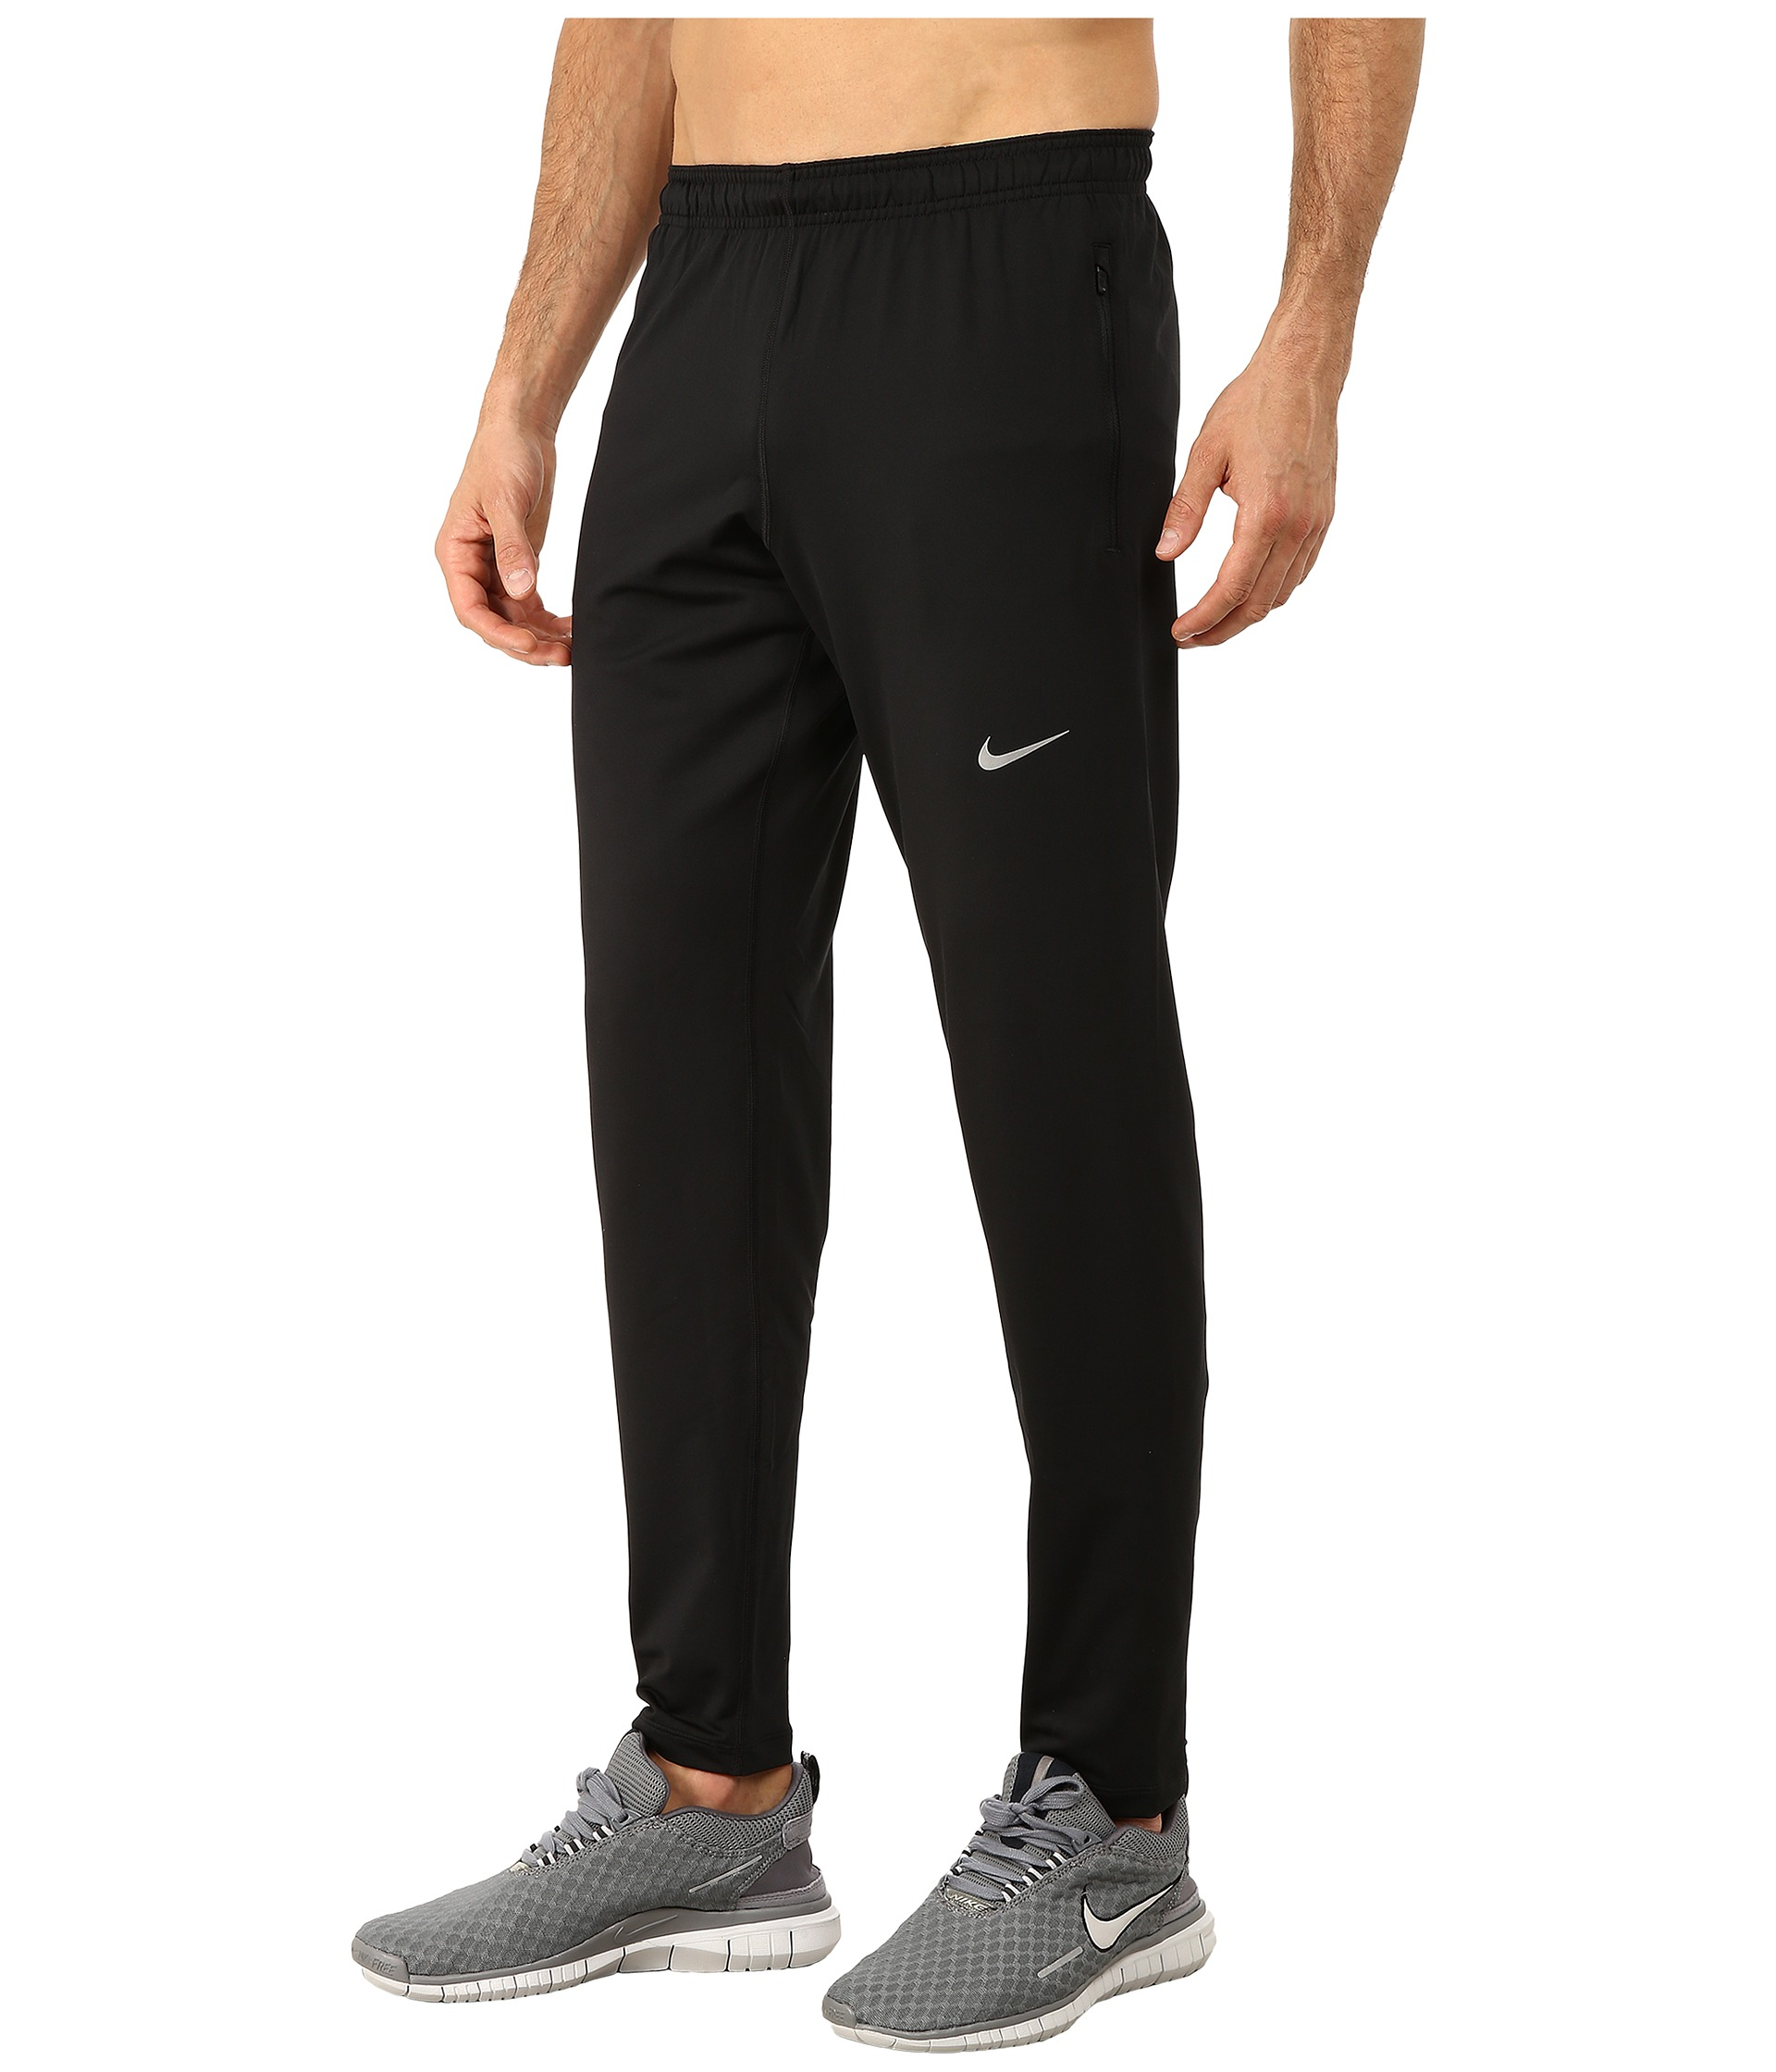 Luxury It Will All Turn Out To Be A Good Investment For You Myntra Offers A Versatile Collection Of Nike Track Pants Online For Men As Well As Women Mix And Match To Discover New Combinations And Surprise Your Friends Your Sportswear Need Not Be